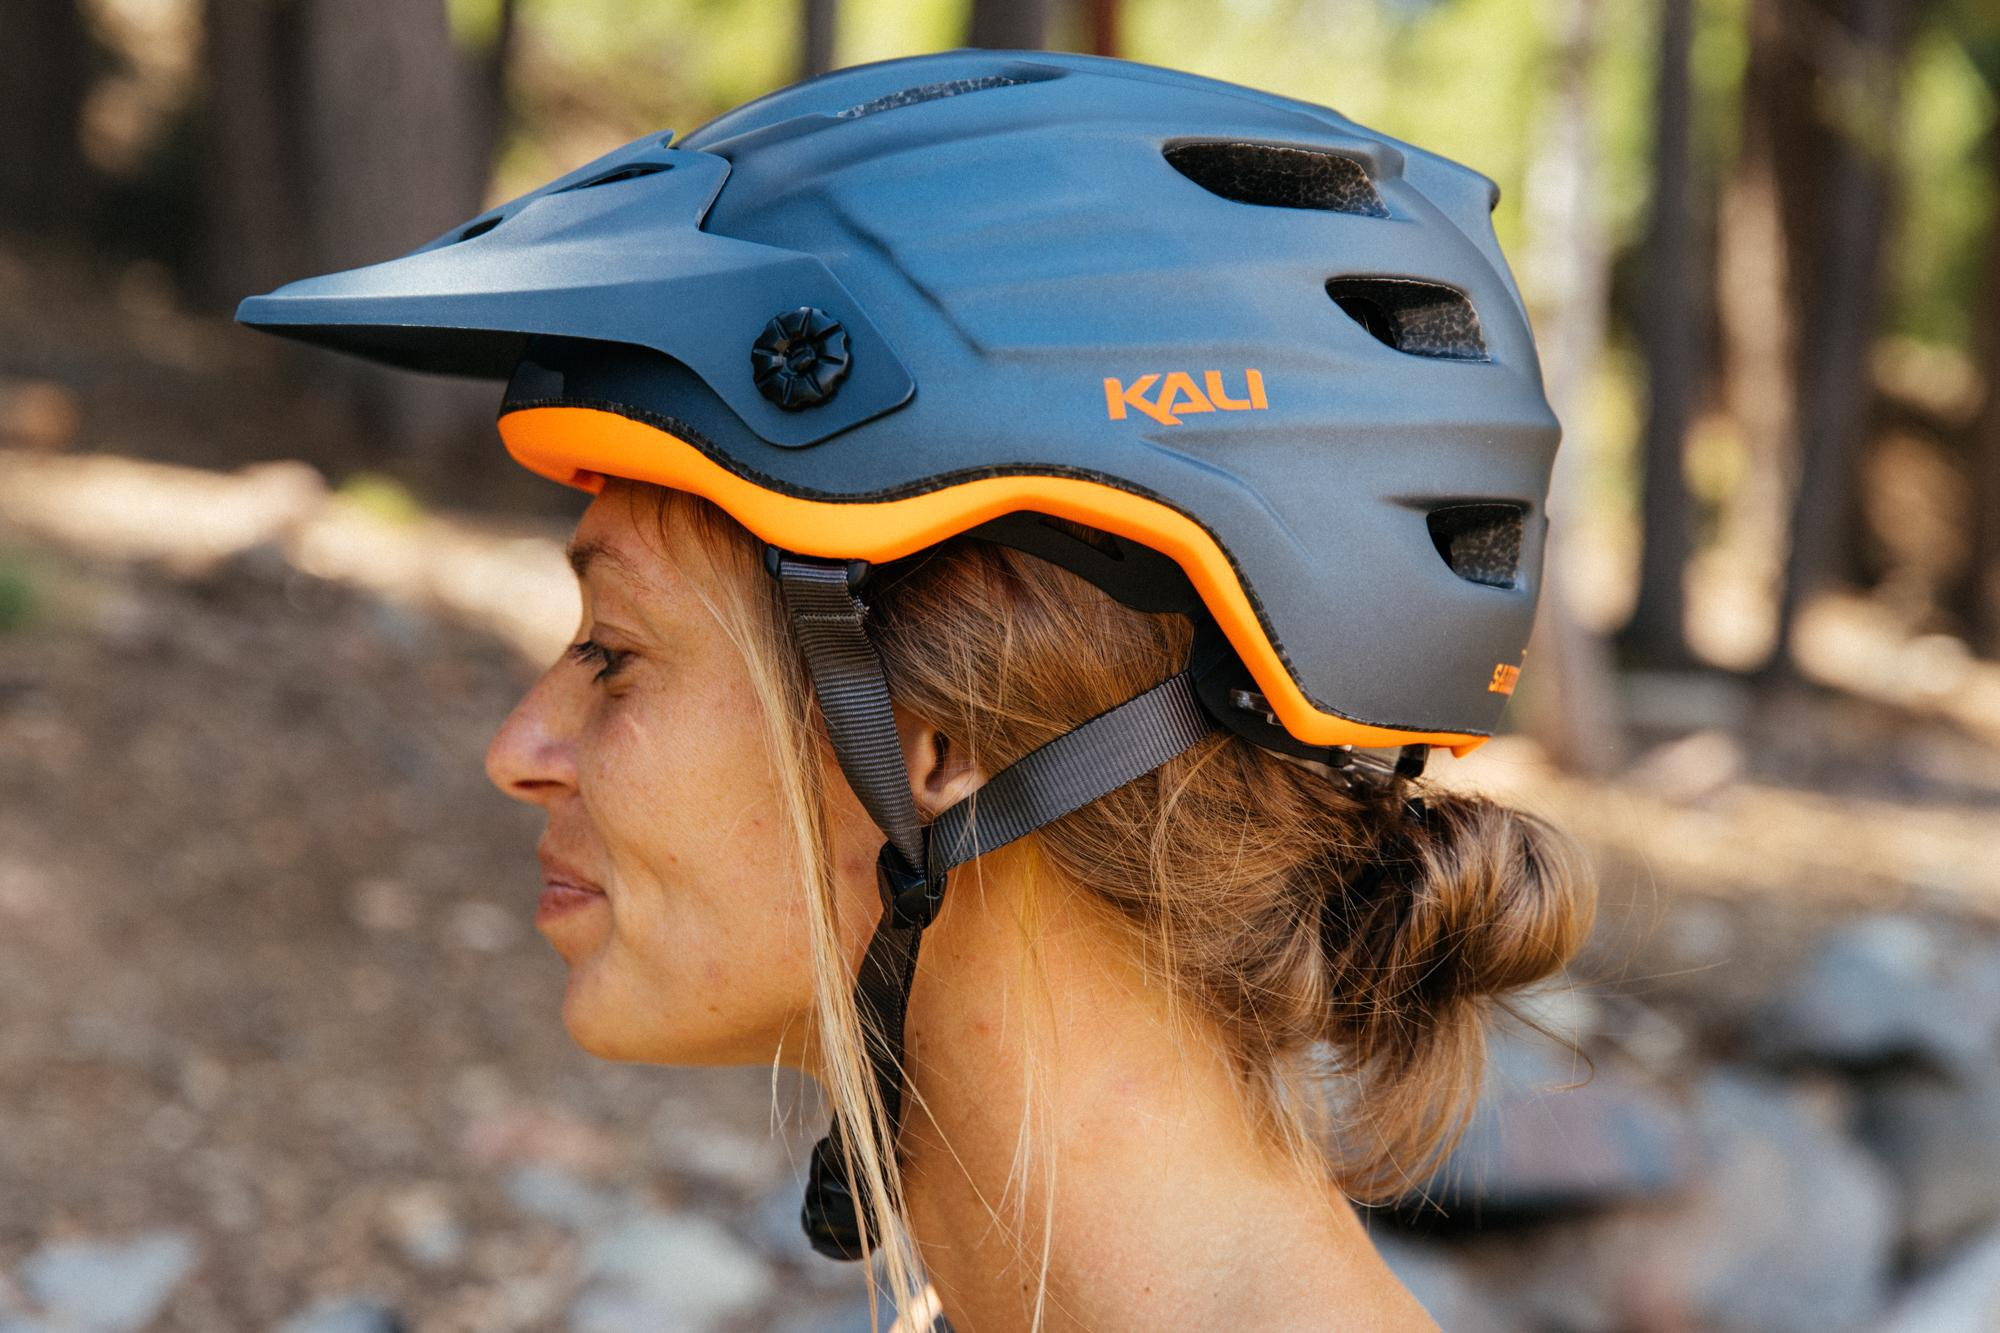 Crystal modeling the Kali Saddle Drive Helmet